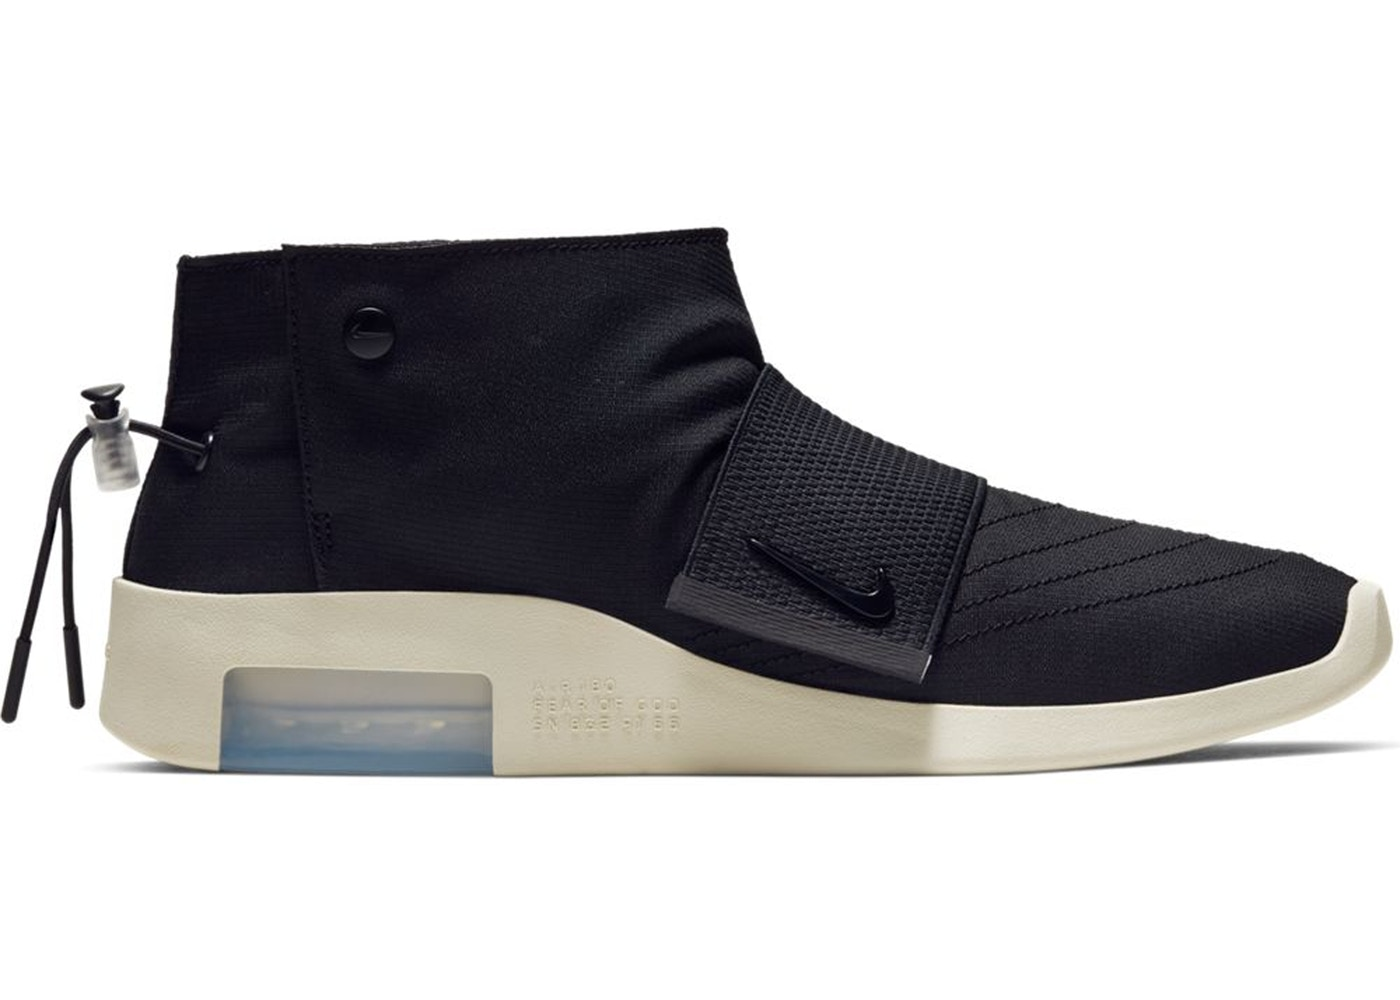 b2bb4157 Air Fear Of God Moccasin Black • Buy/Sell StockX